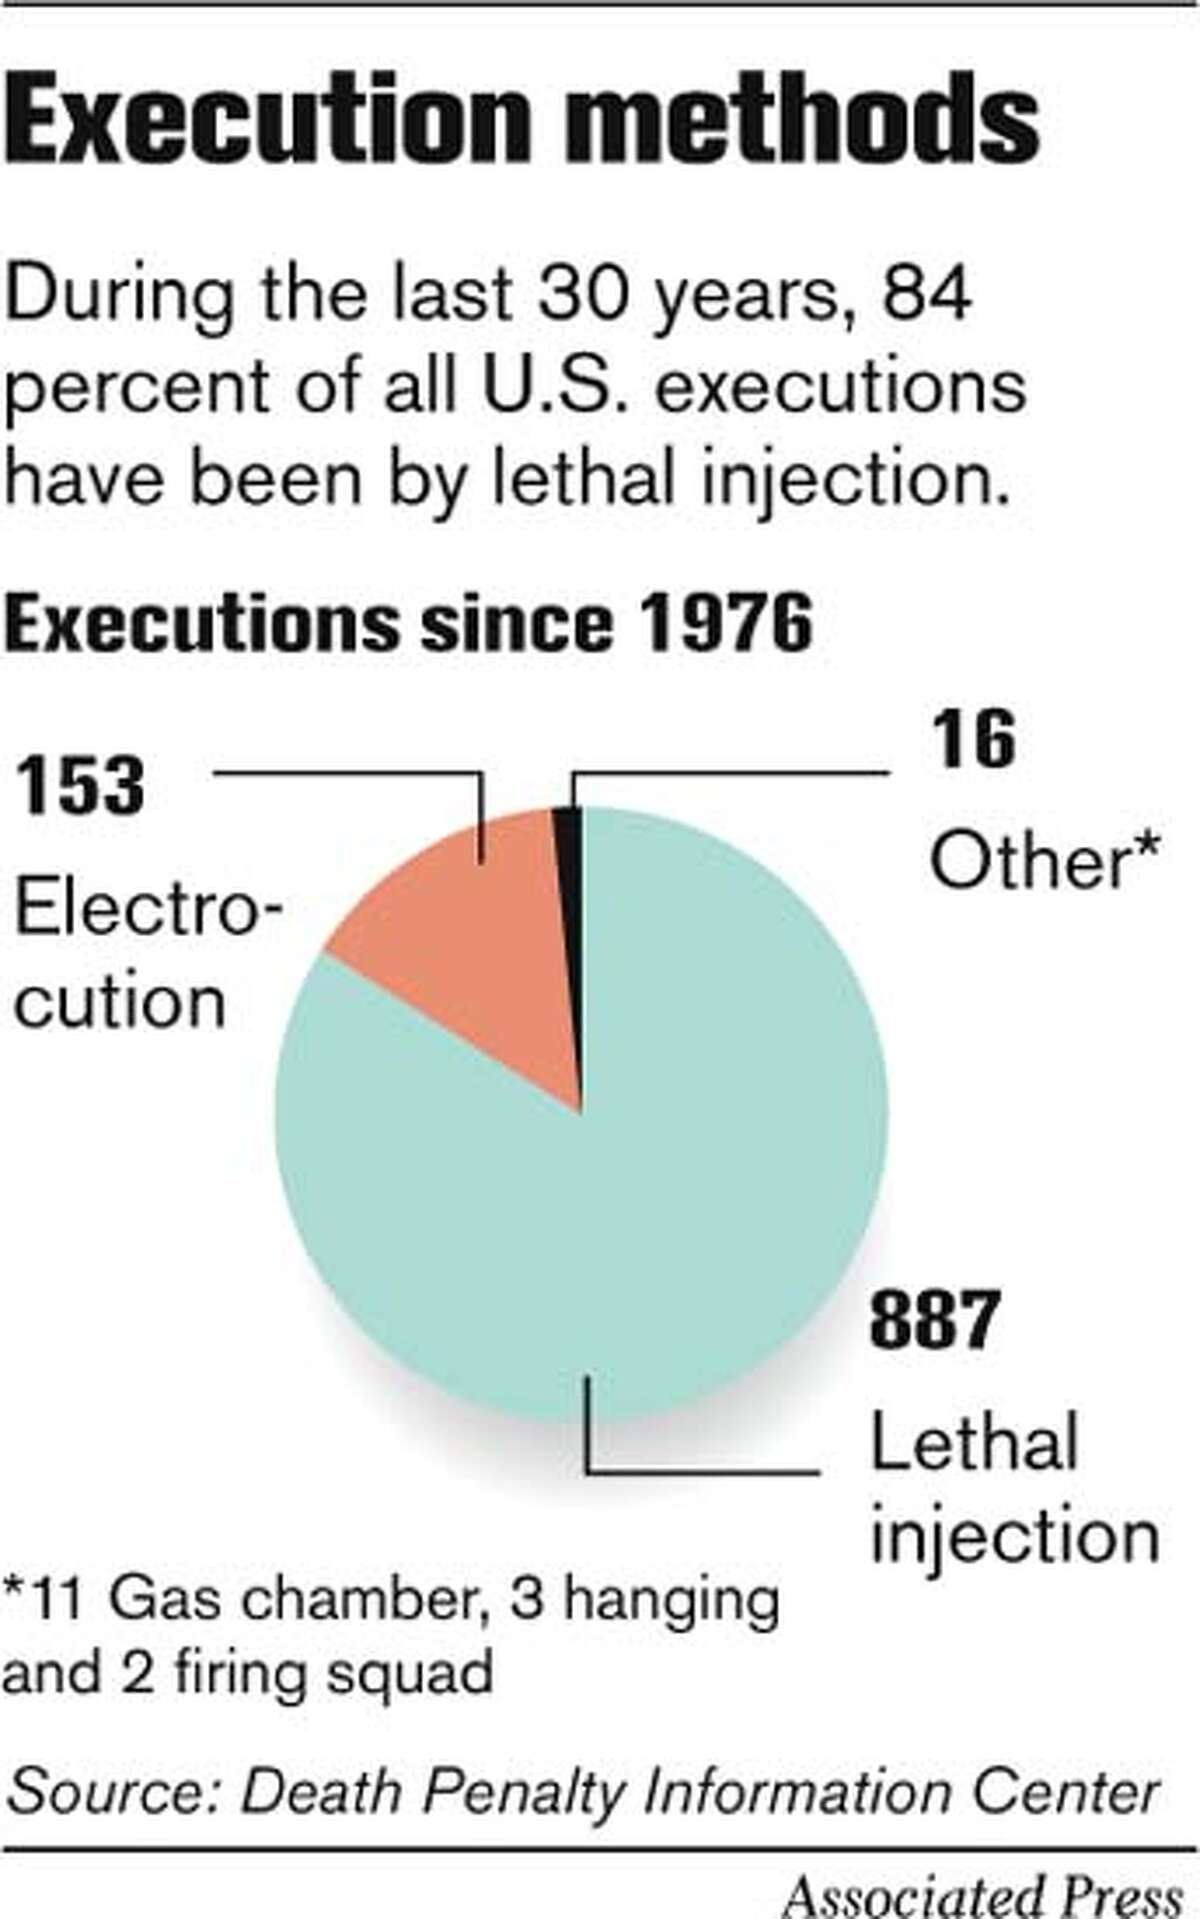 Execution Methods. Associated Press Graphic